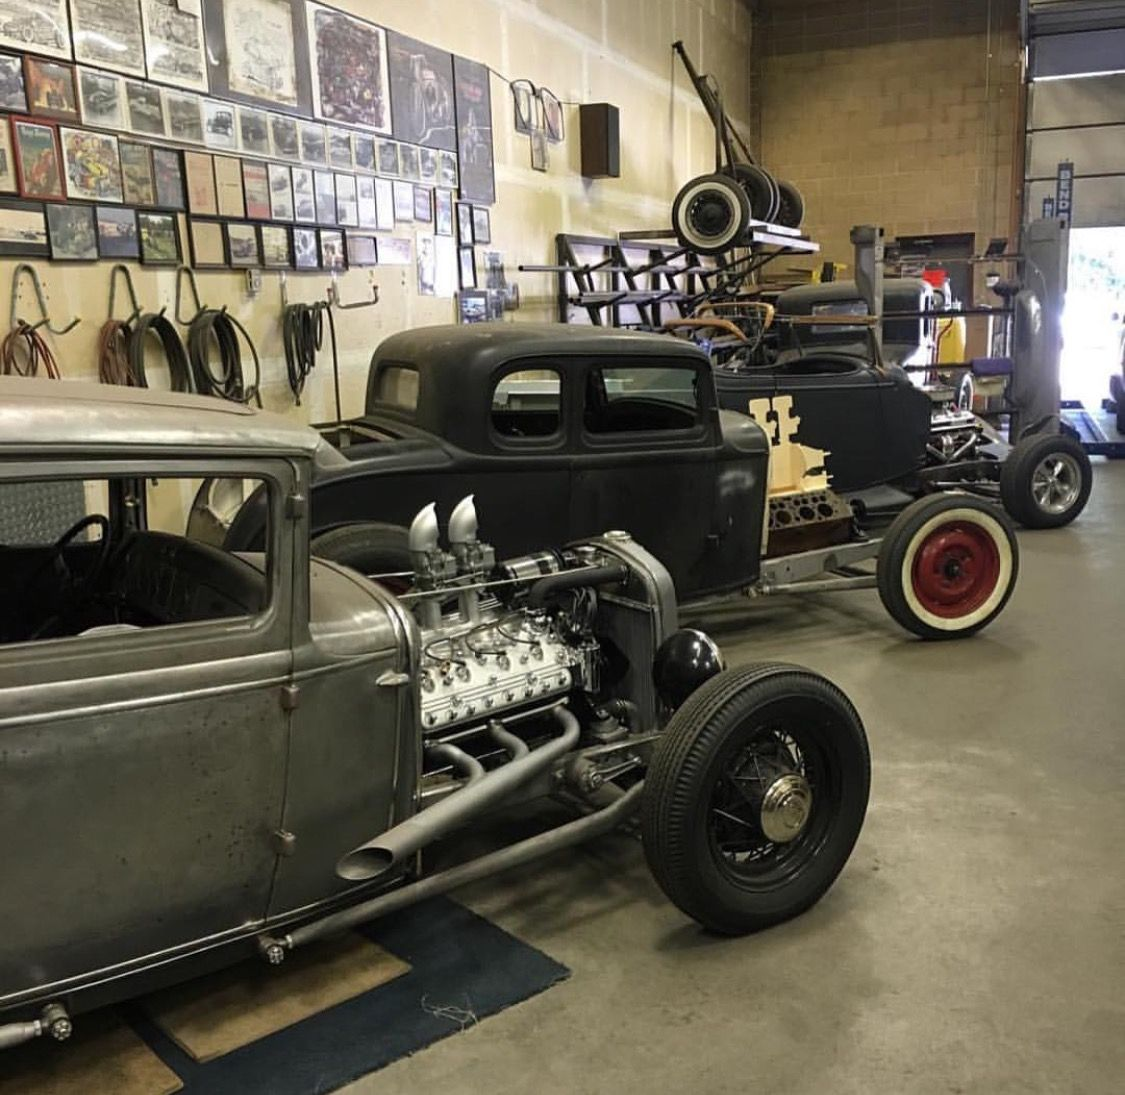 Traditional Hot Rod, Old Hot Rods, Hot Rods